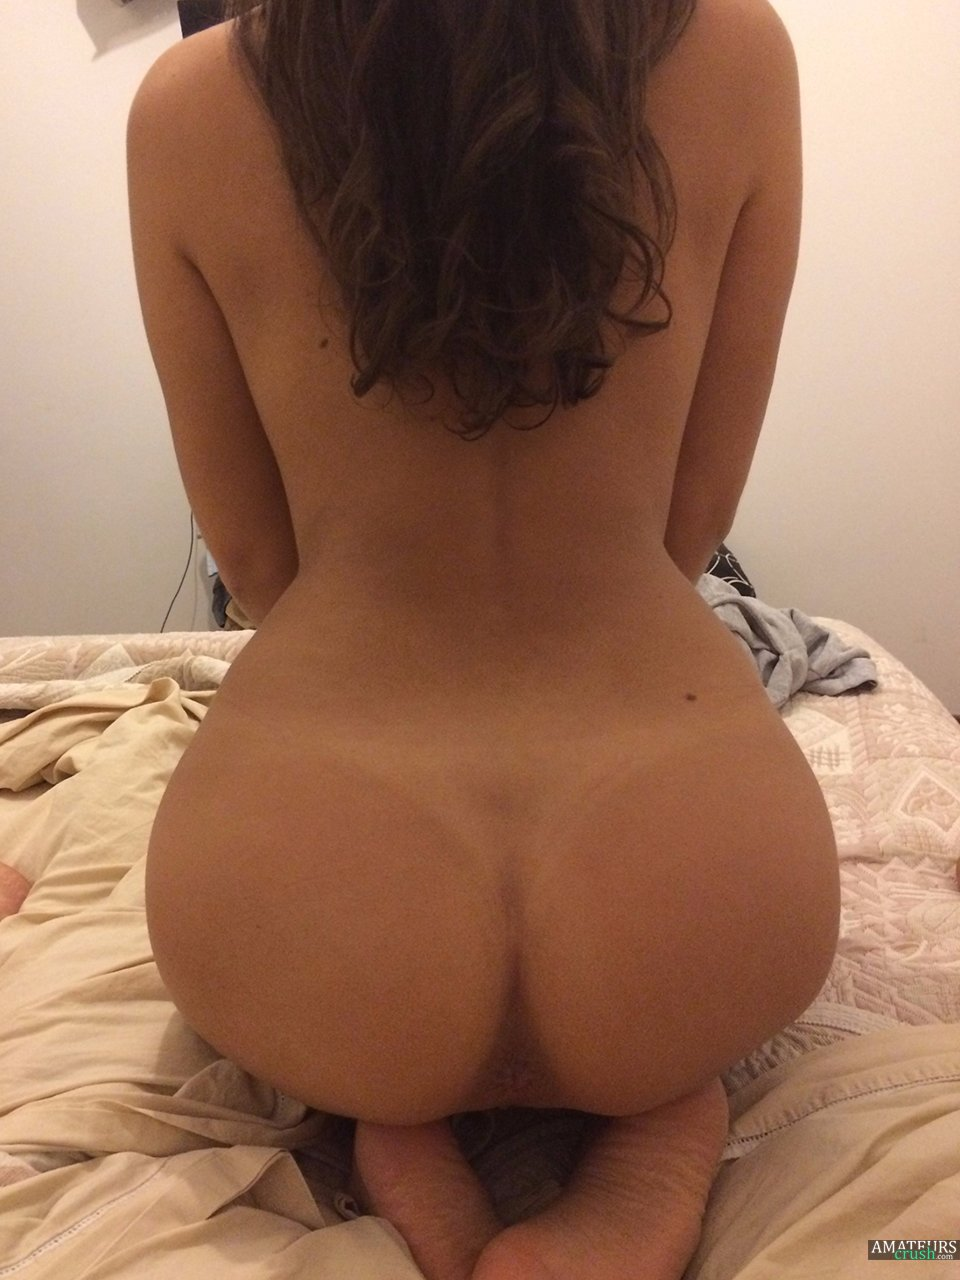 girlfriend bent over perfect round sexy ass - amateurscrush